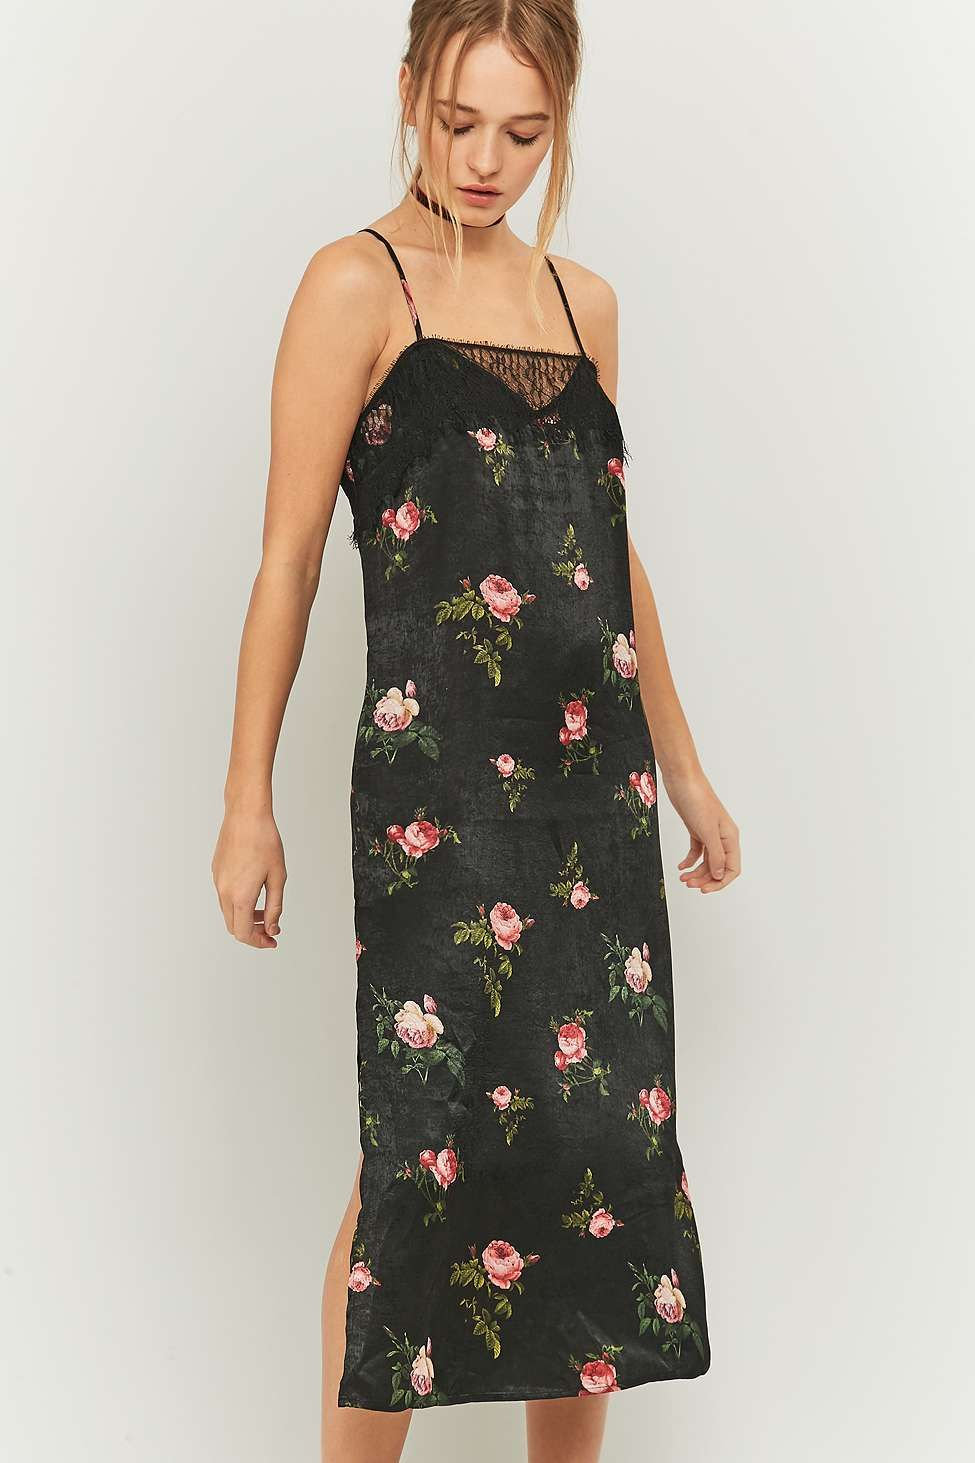 Pins And Needles Clothing Pins & Needles Floral And Lace Black Satin Midi Slip Dress  Black